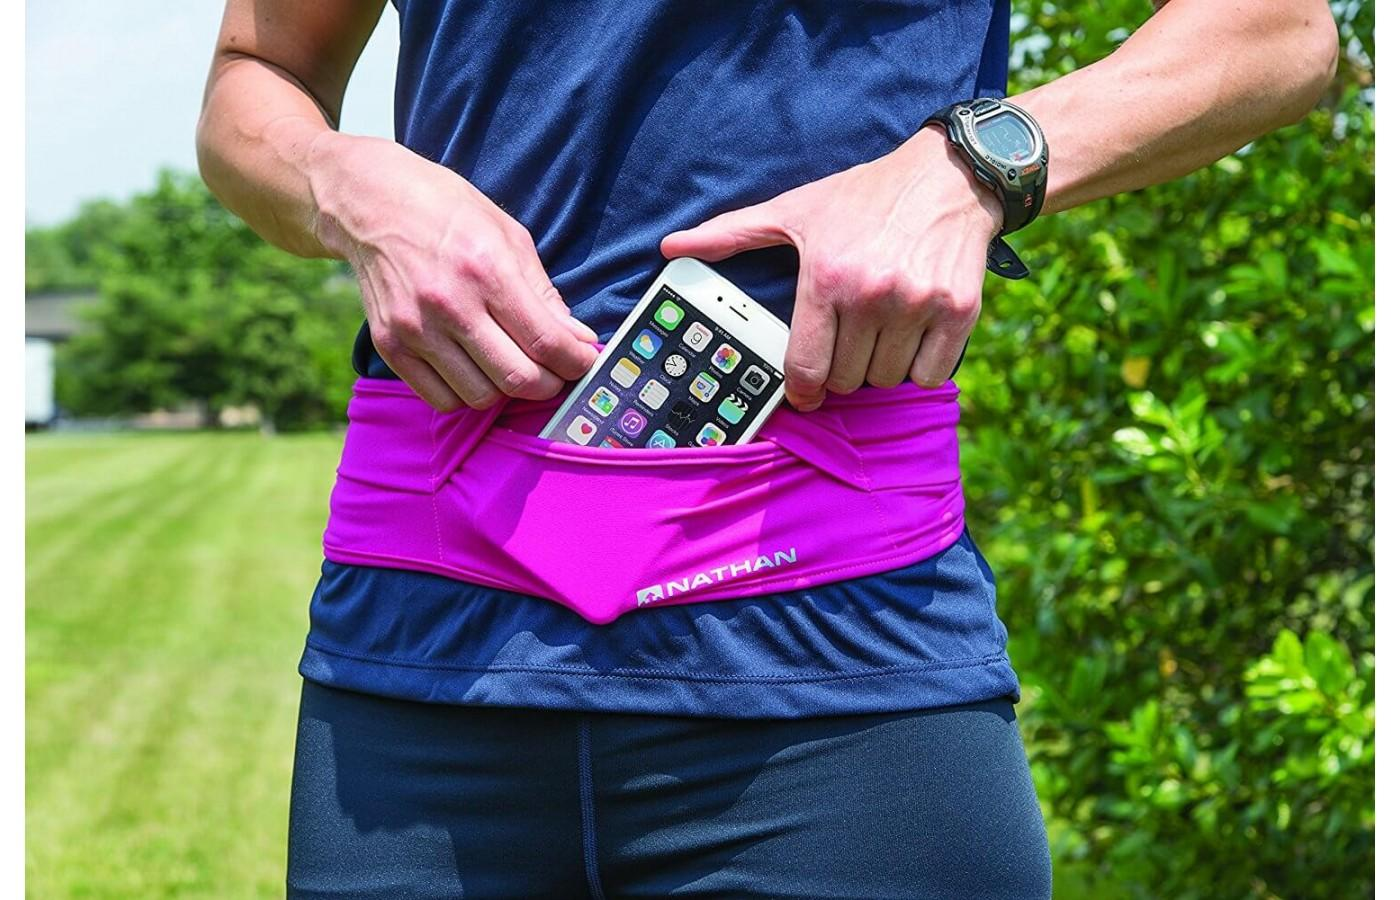 The Nathan The Hipster Running Belt is machine washable